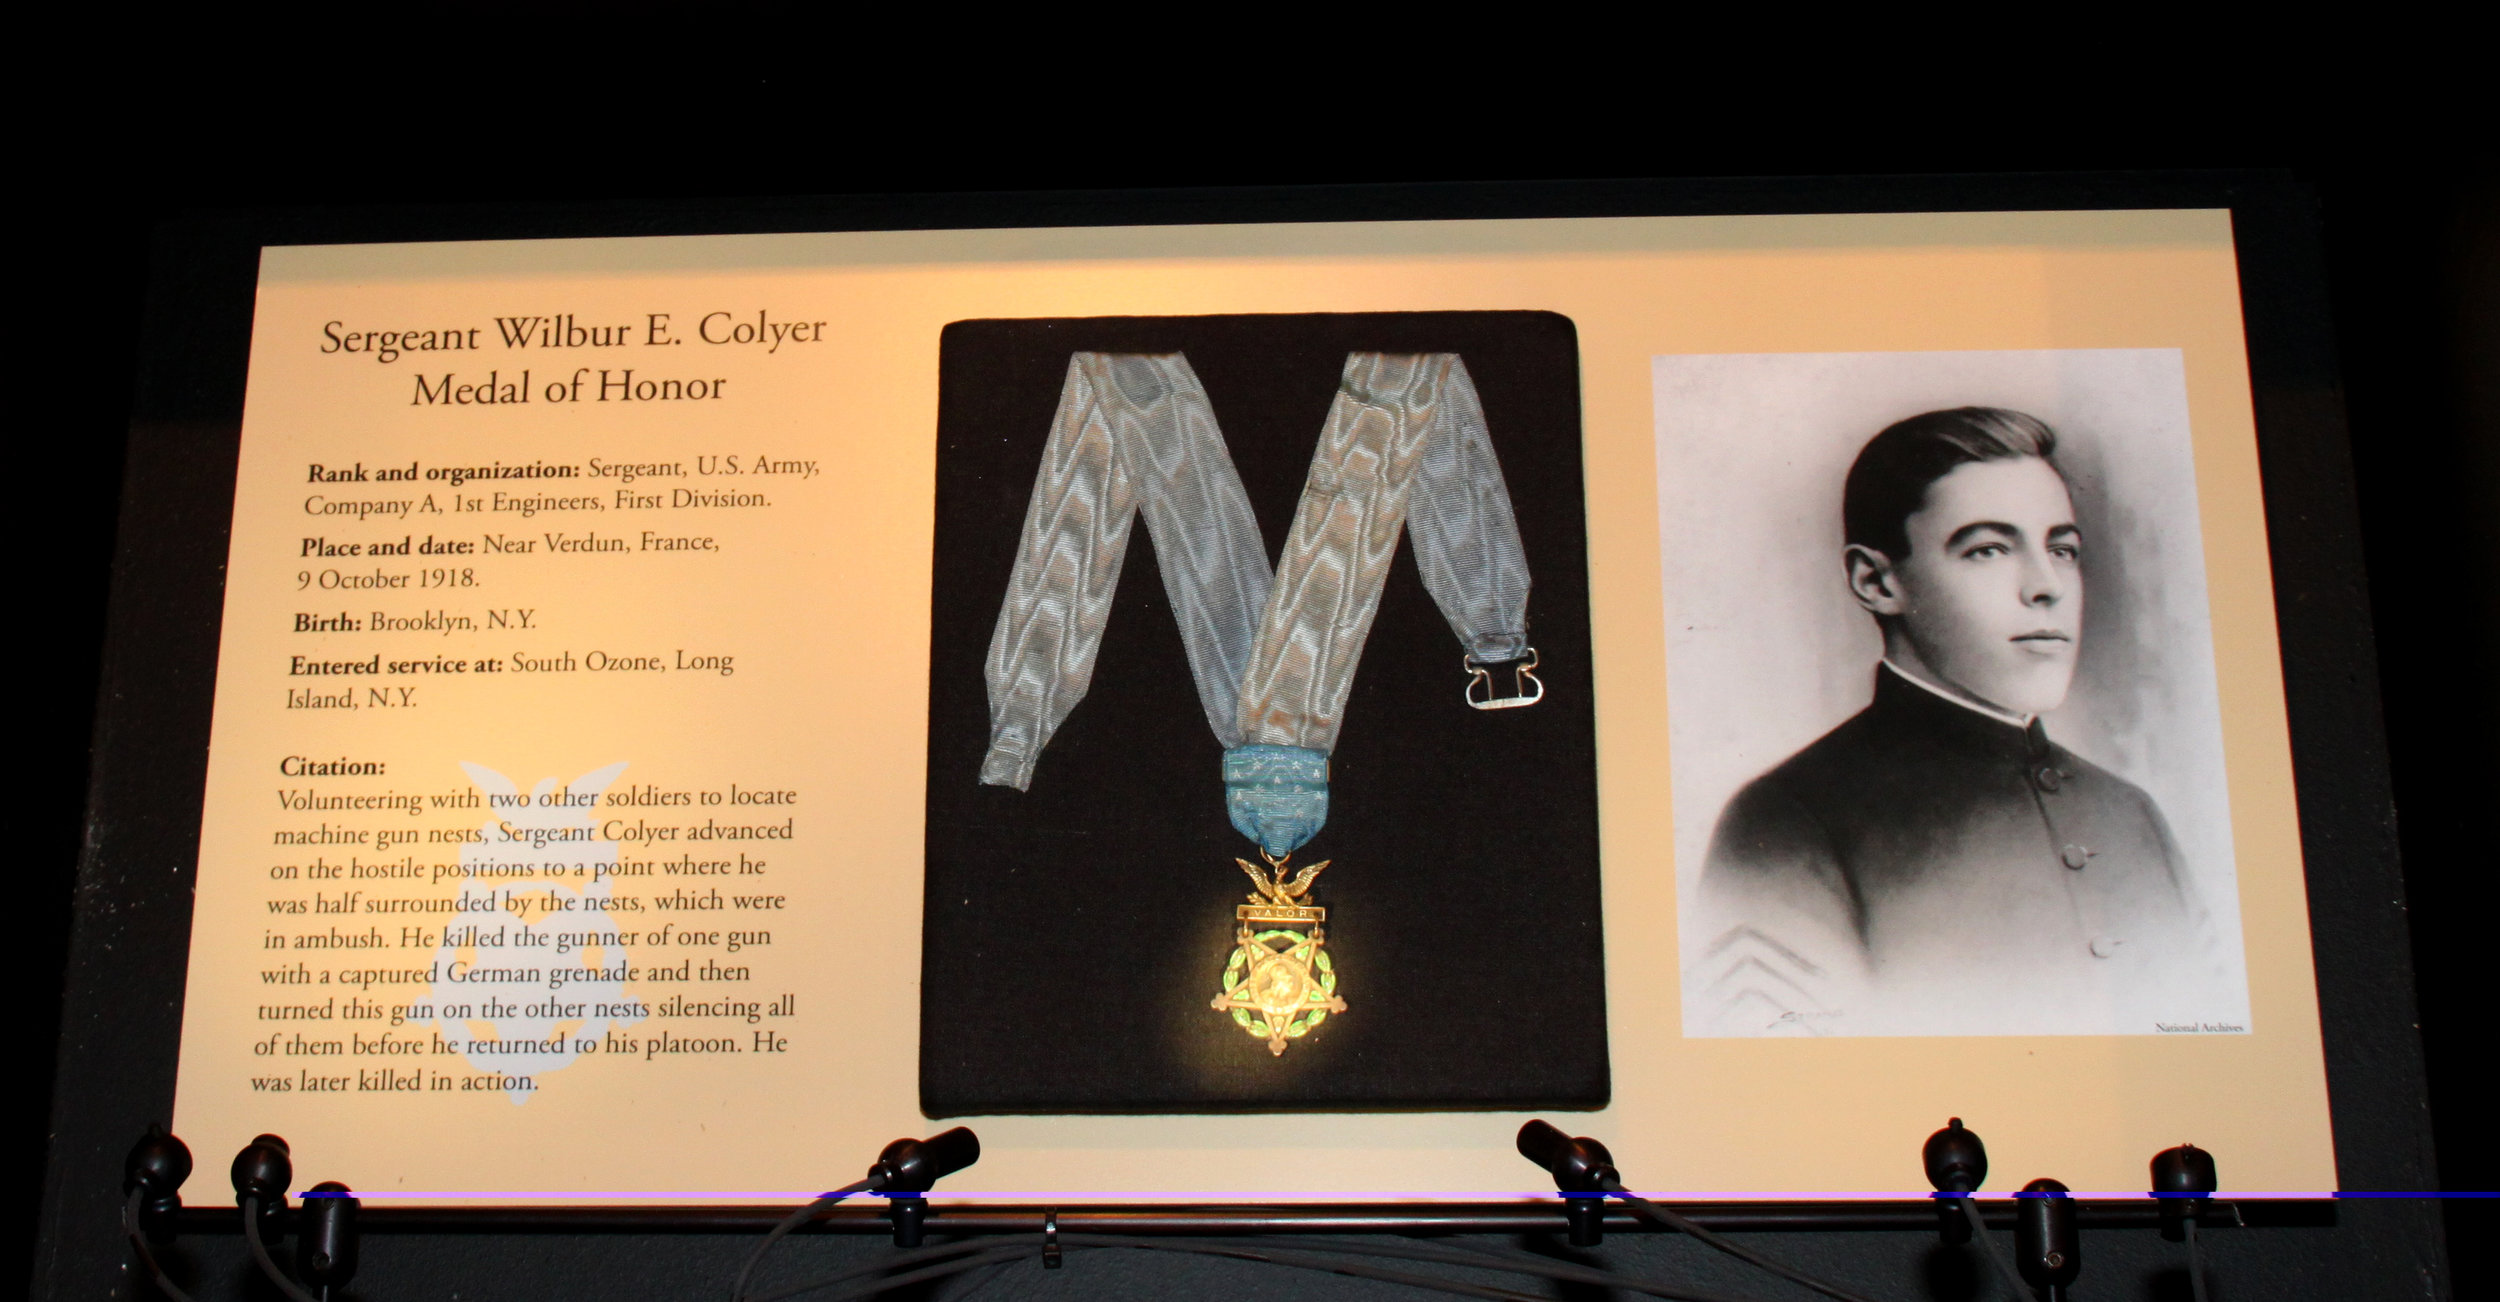 Medal of Honor, conserved and mounted for the First Division Museum at Cantigny, Wheaton, IL. Photo courtesy of First Division Museum at Cantigny.